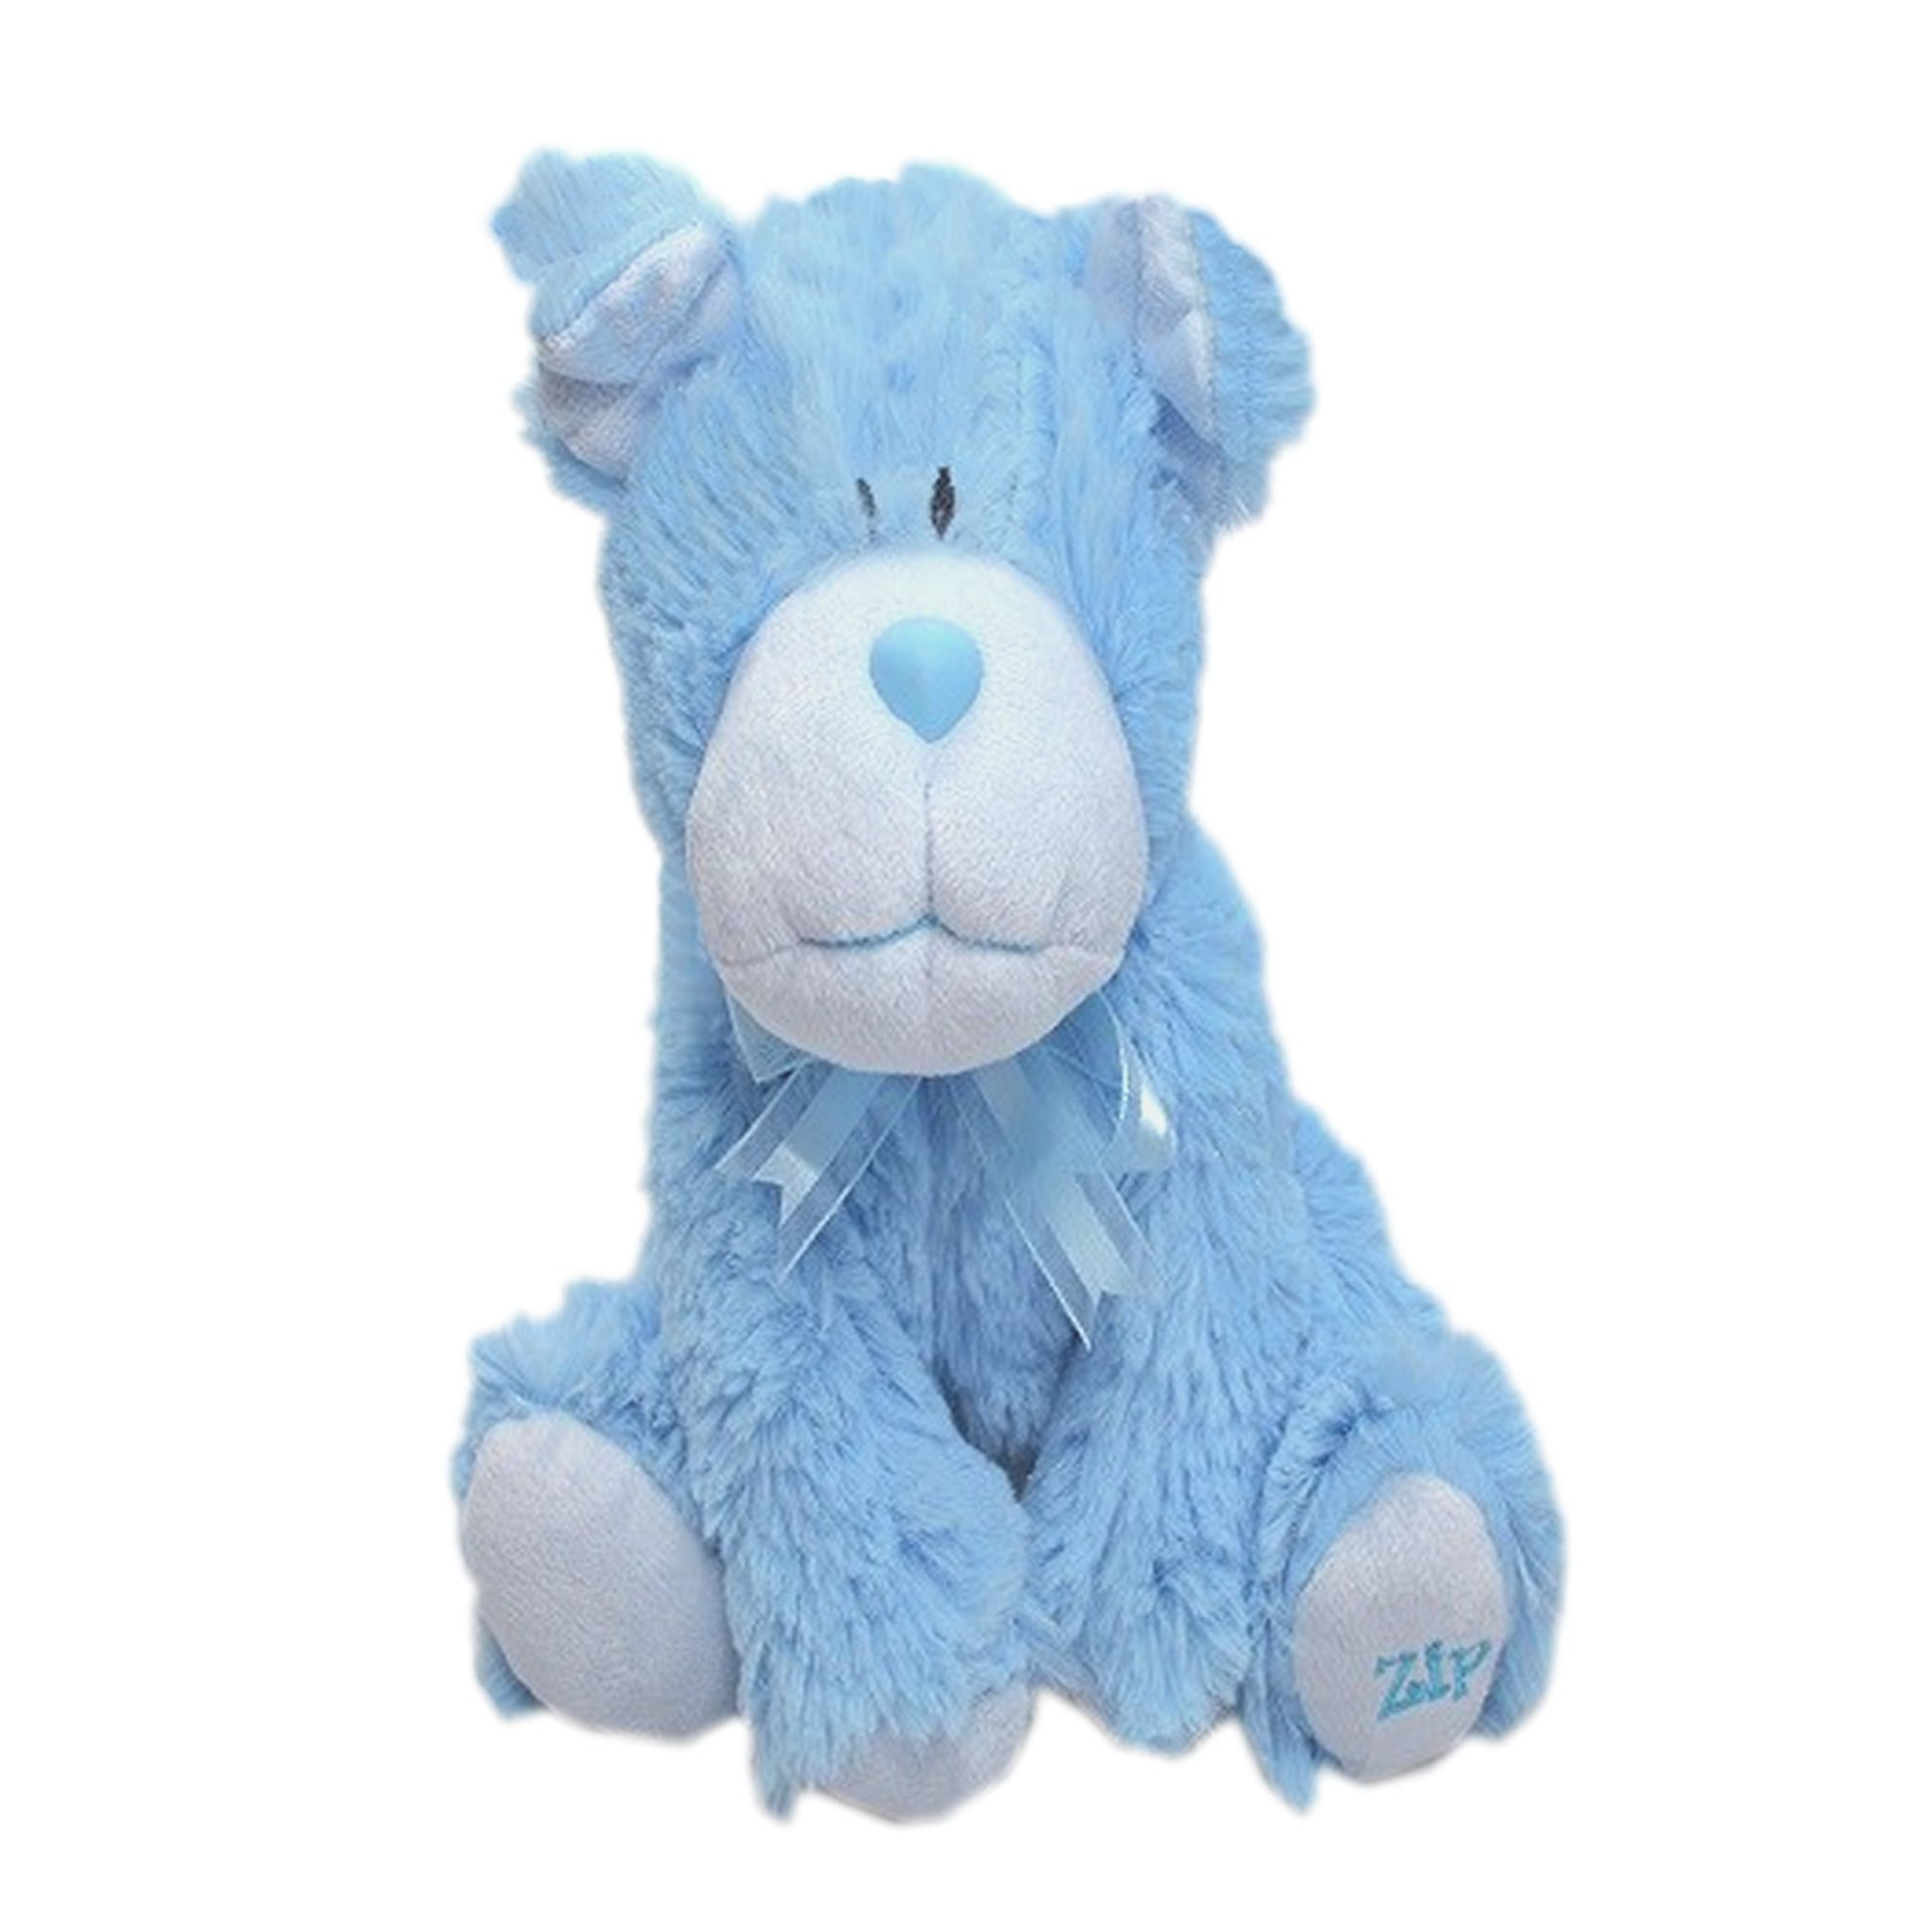 cachorrinho-pelucia-peteca-azul-ziptoys